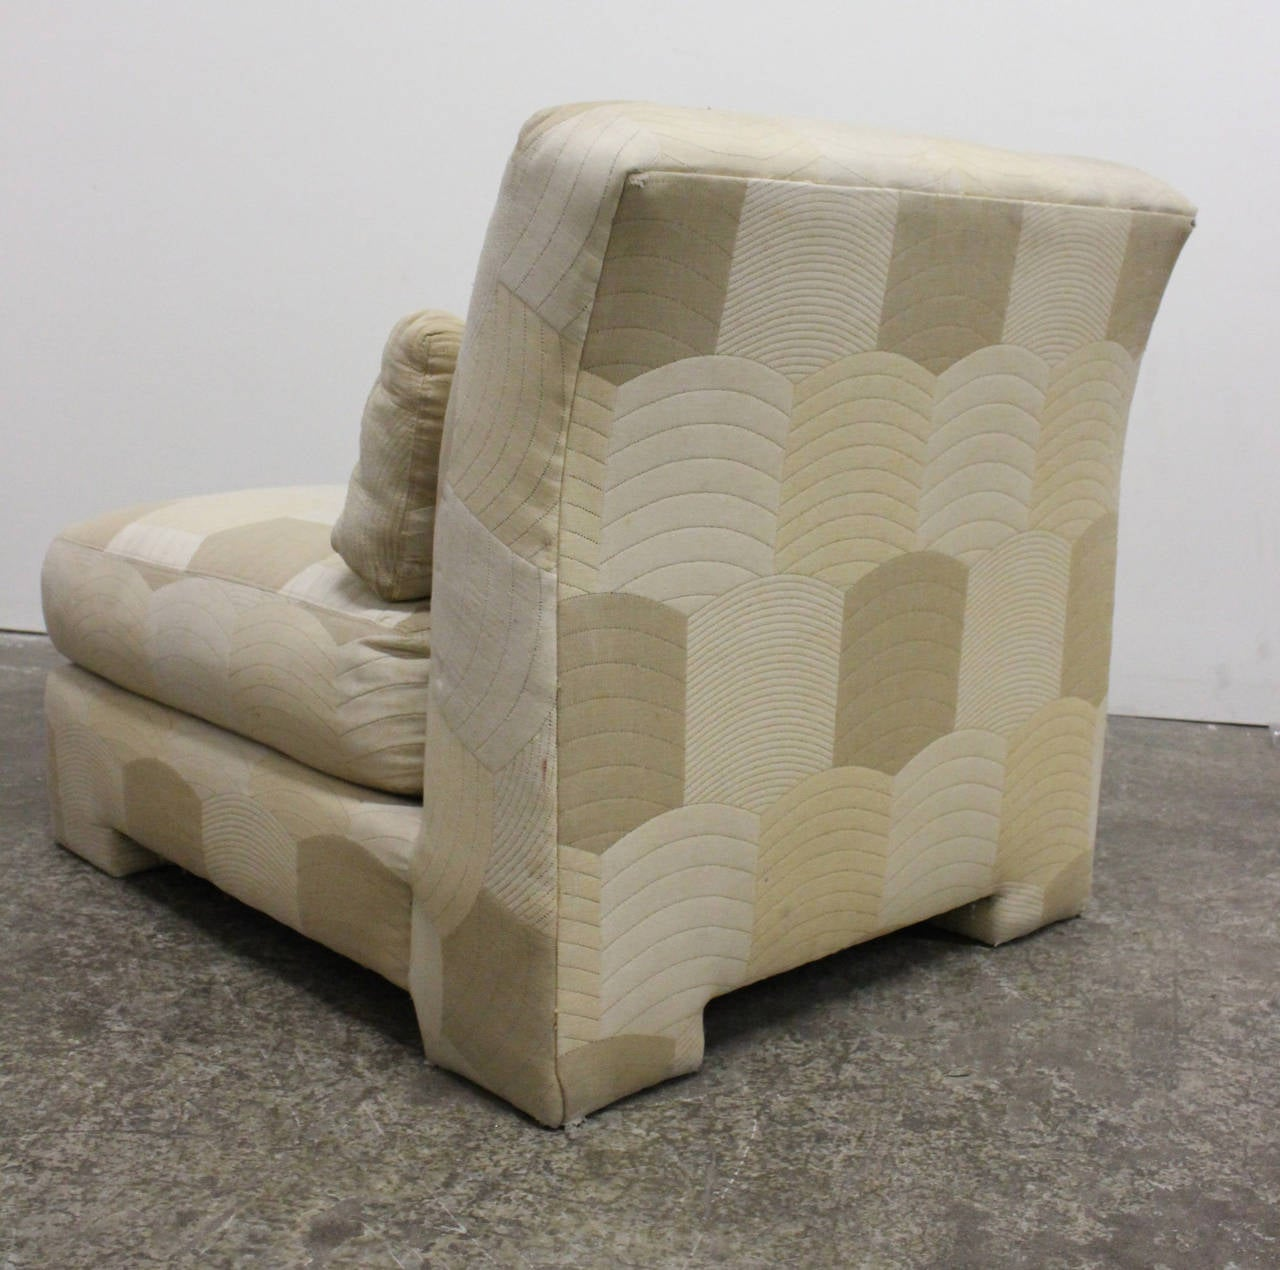 Pair of Slipper Lounge Chairs by Milo Baughman for Thayer Coggin 6